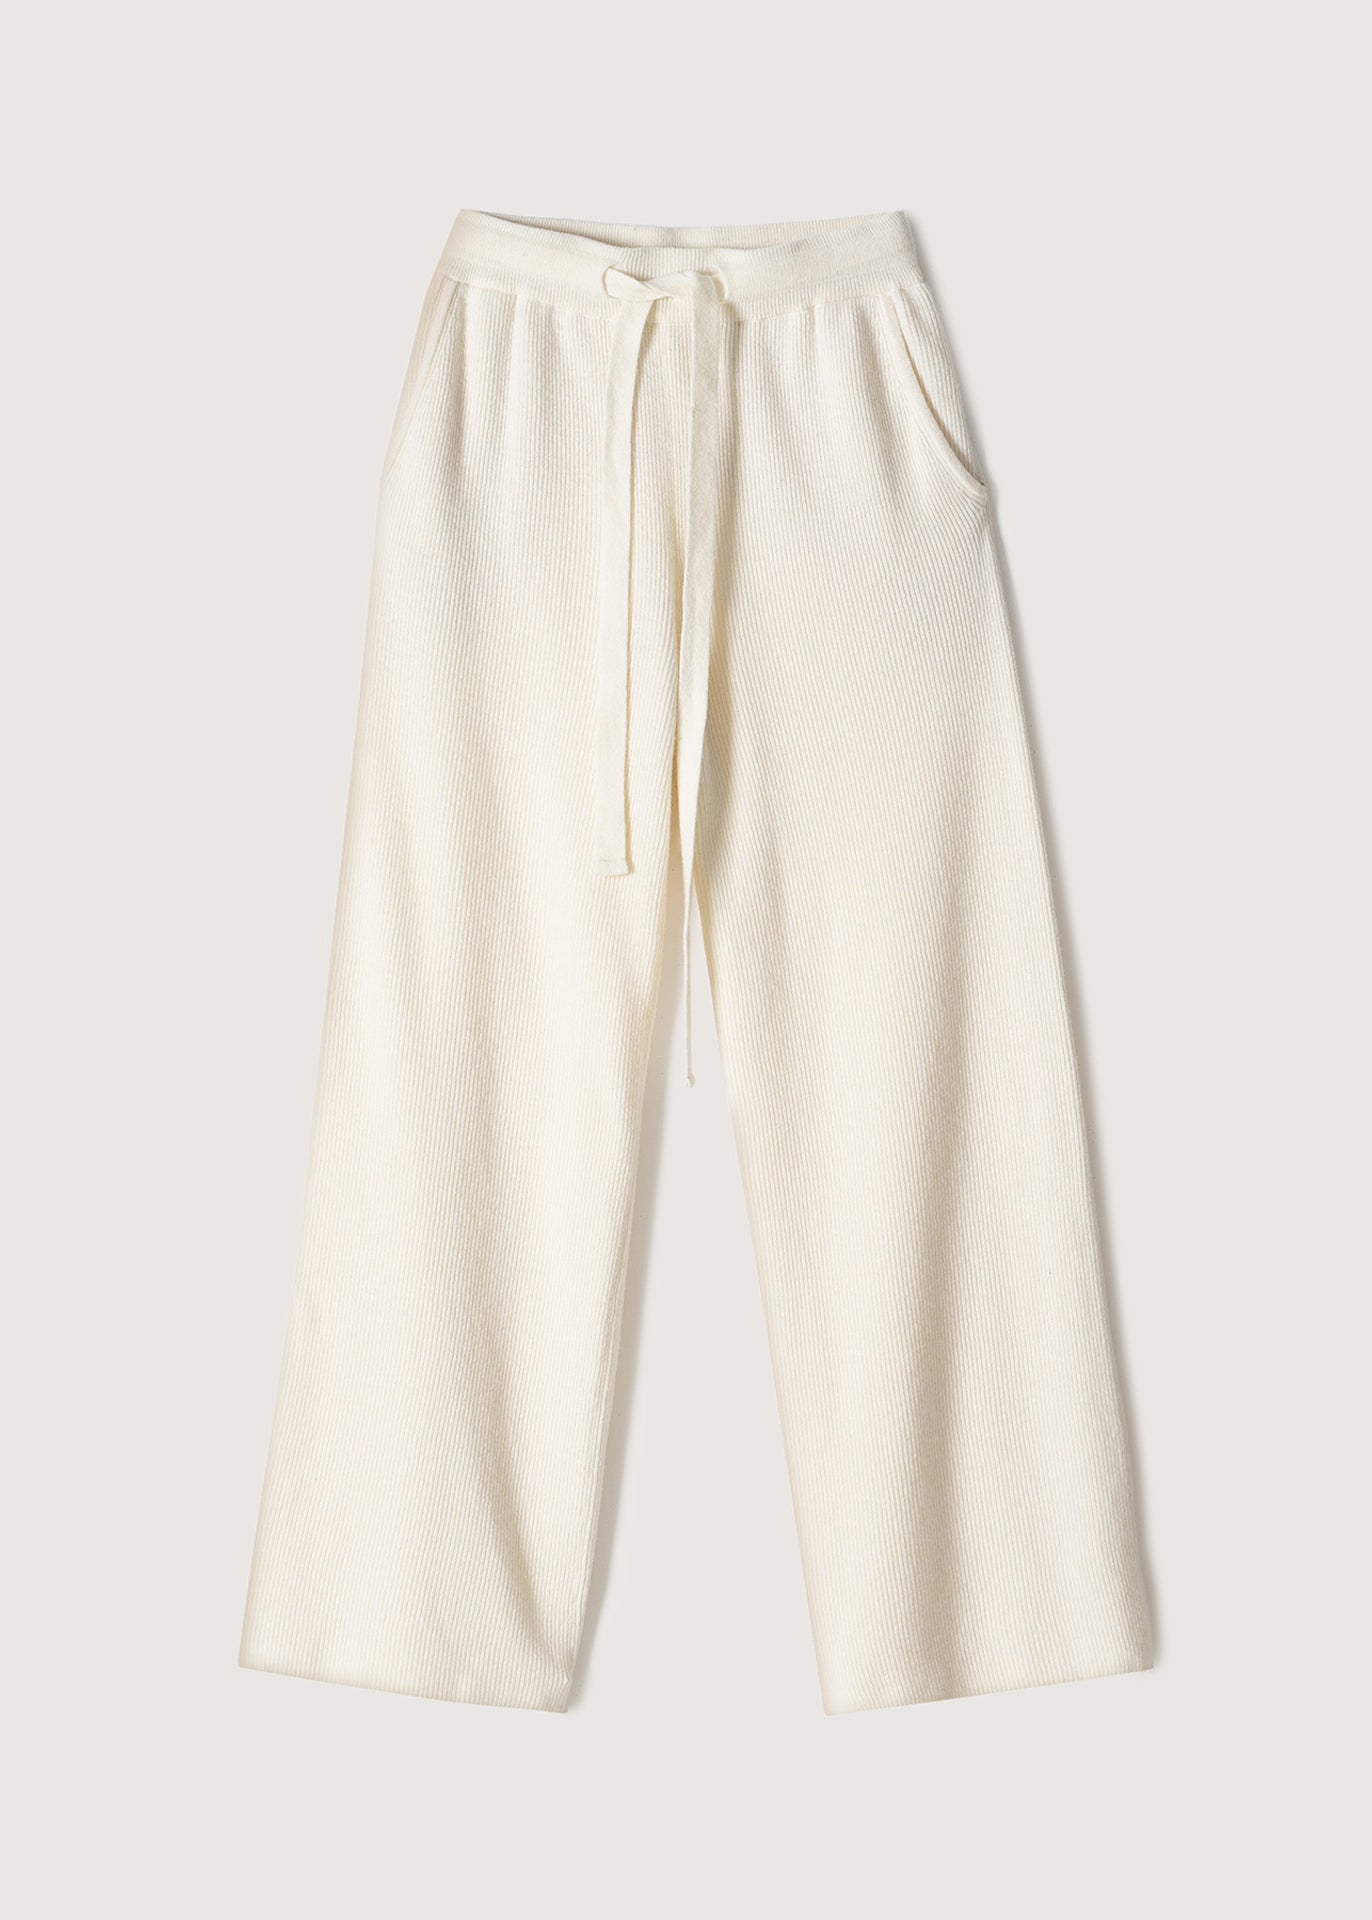 Oni Knit Pants - Cream